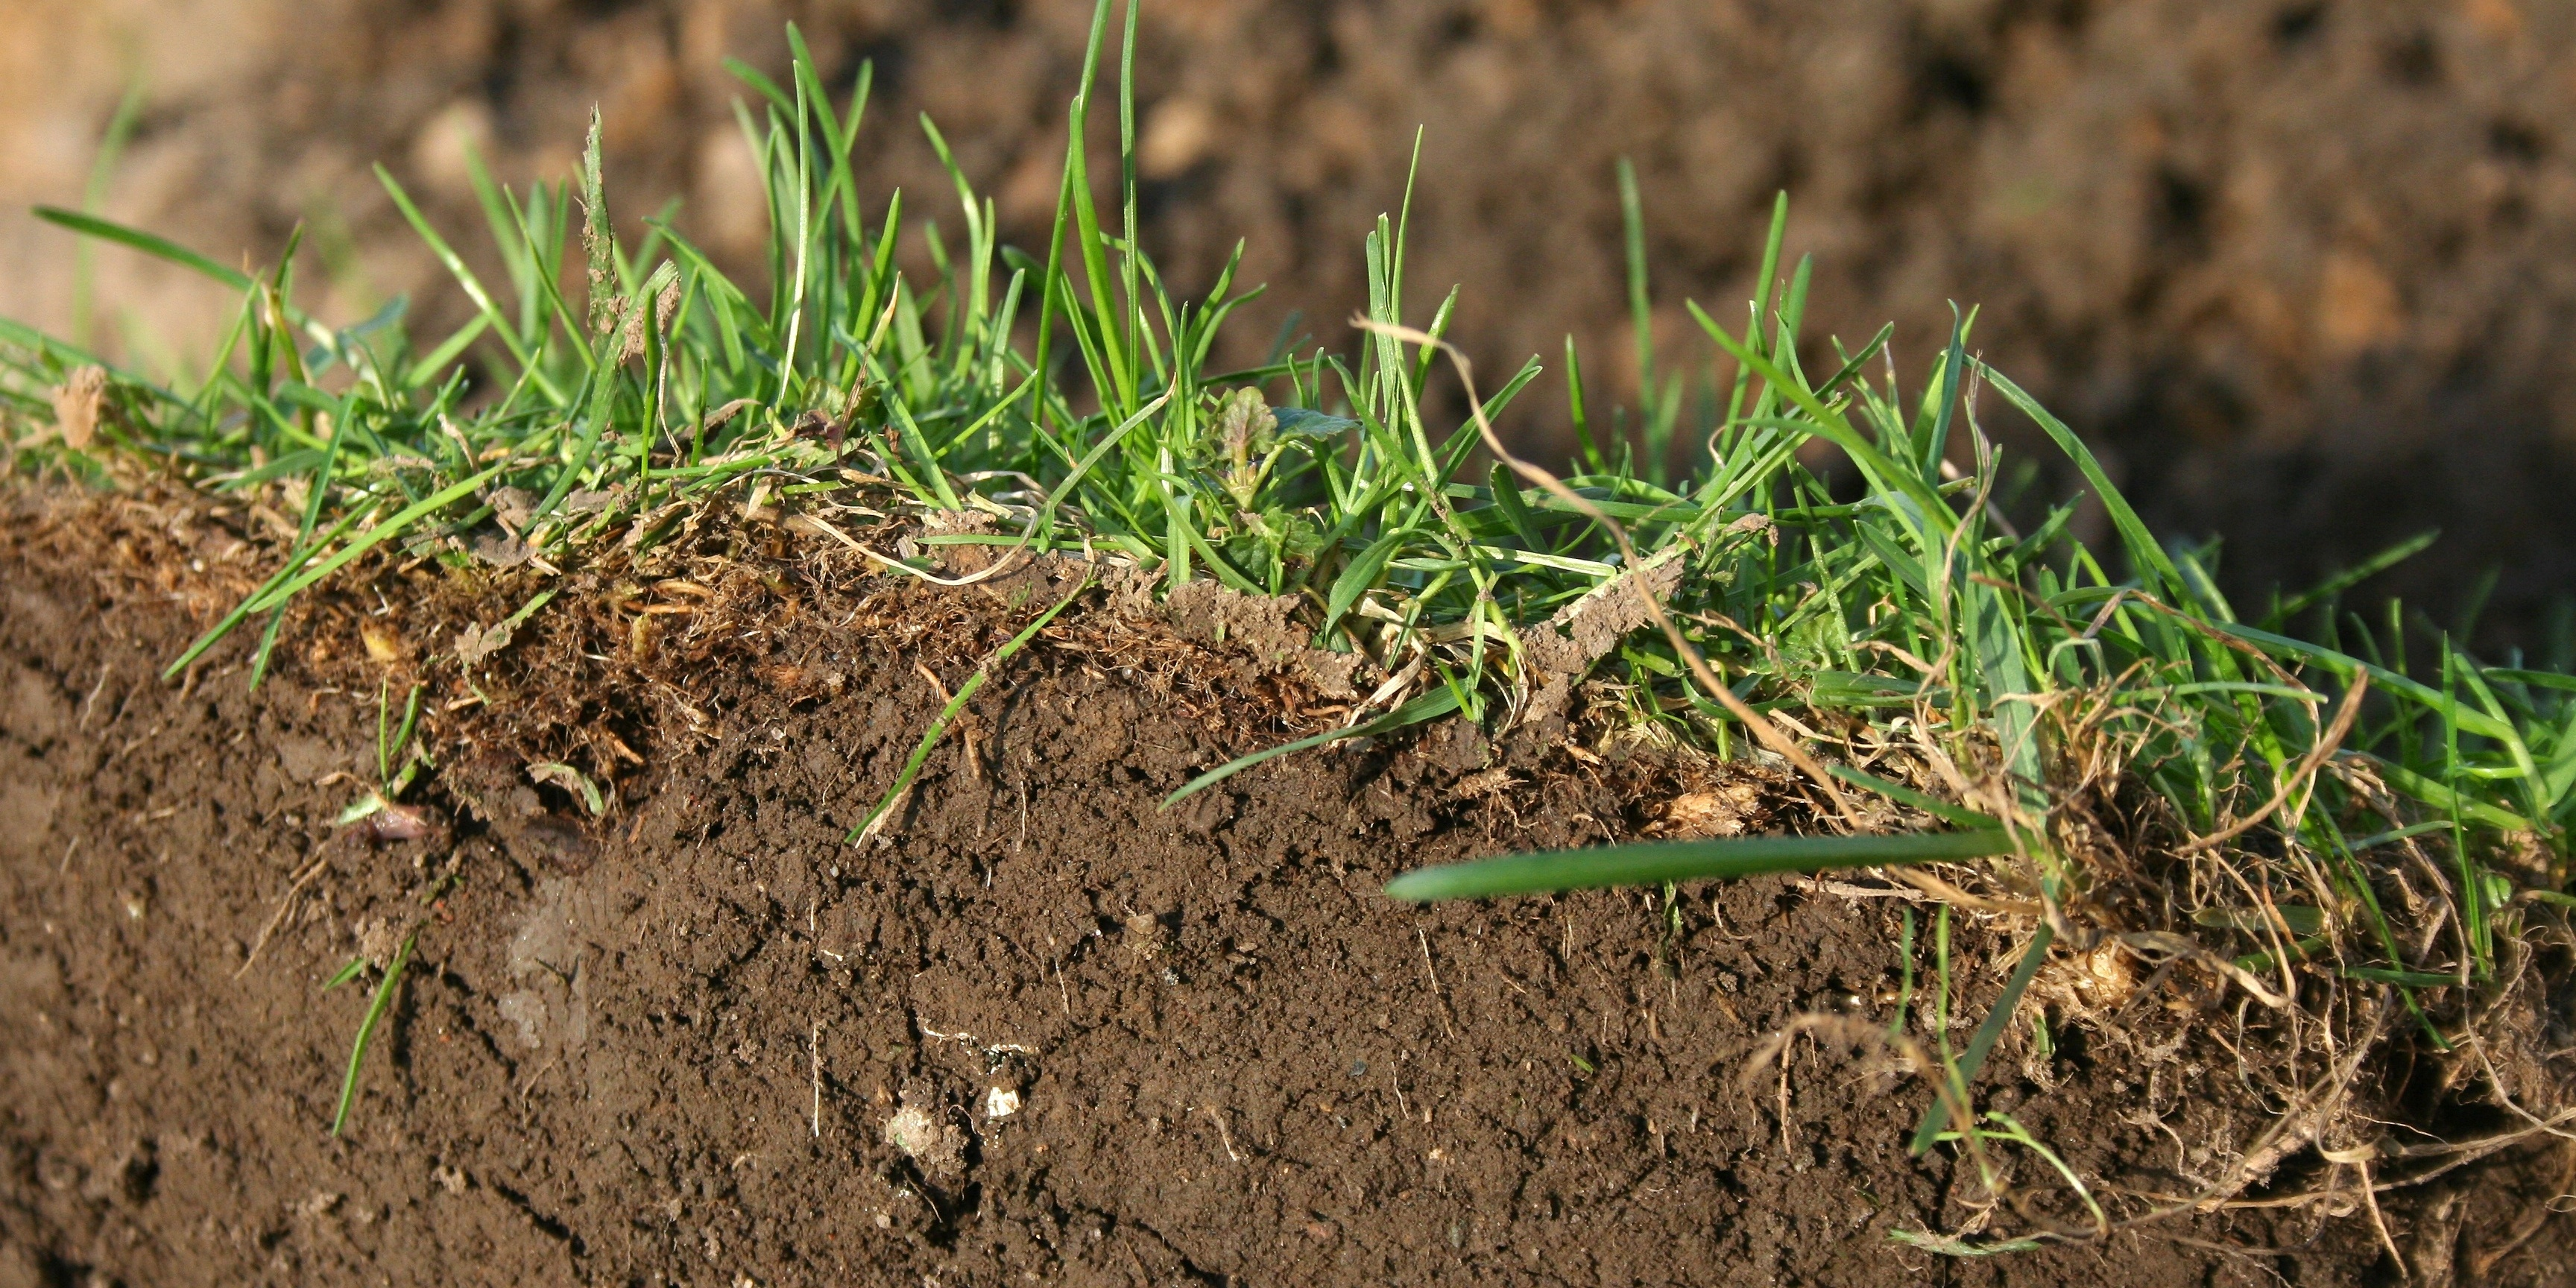 When left untreated, too much thatch can be detrimental to the success of your lawn.